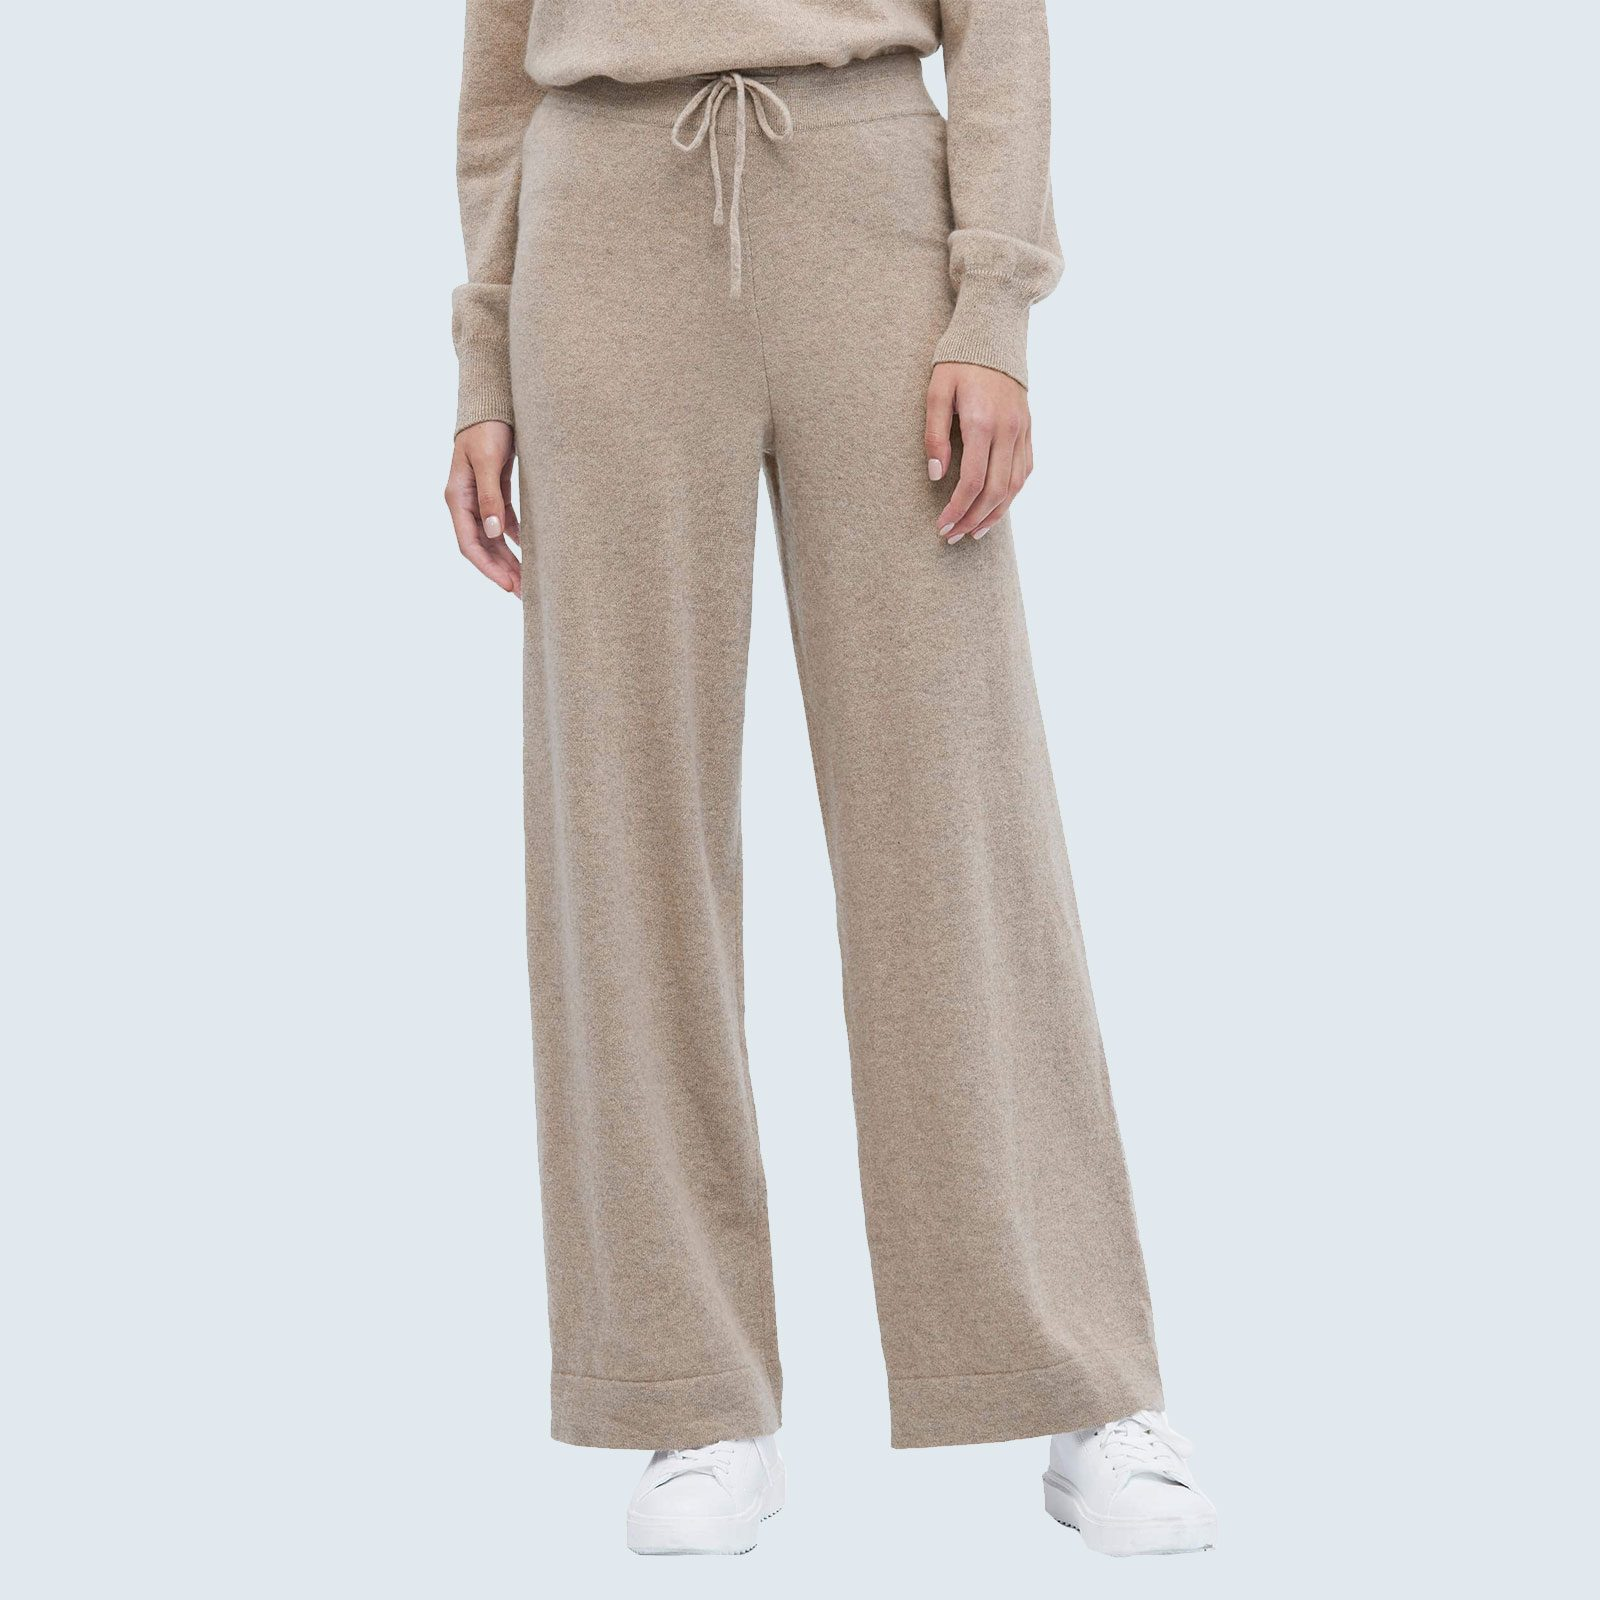 Best luxe loungewear set: Lilysilk Cashmere Knitting Trousers and Pullover Sweater